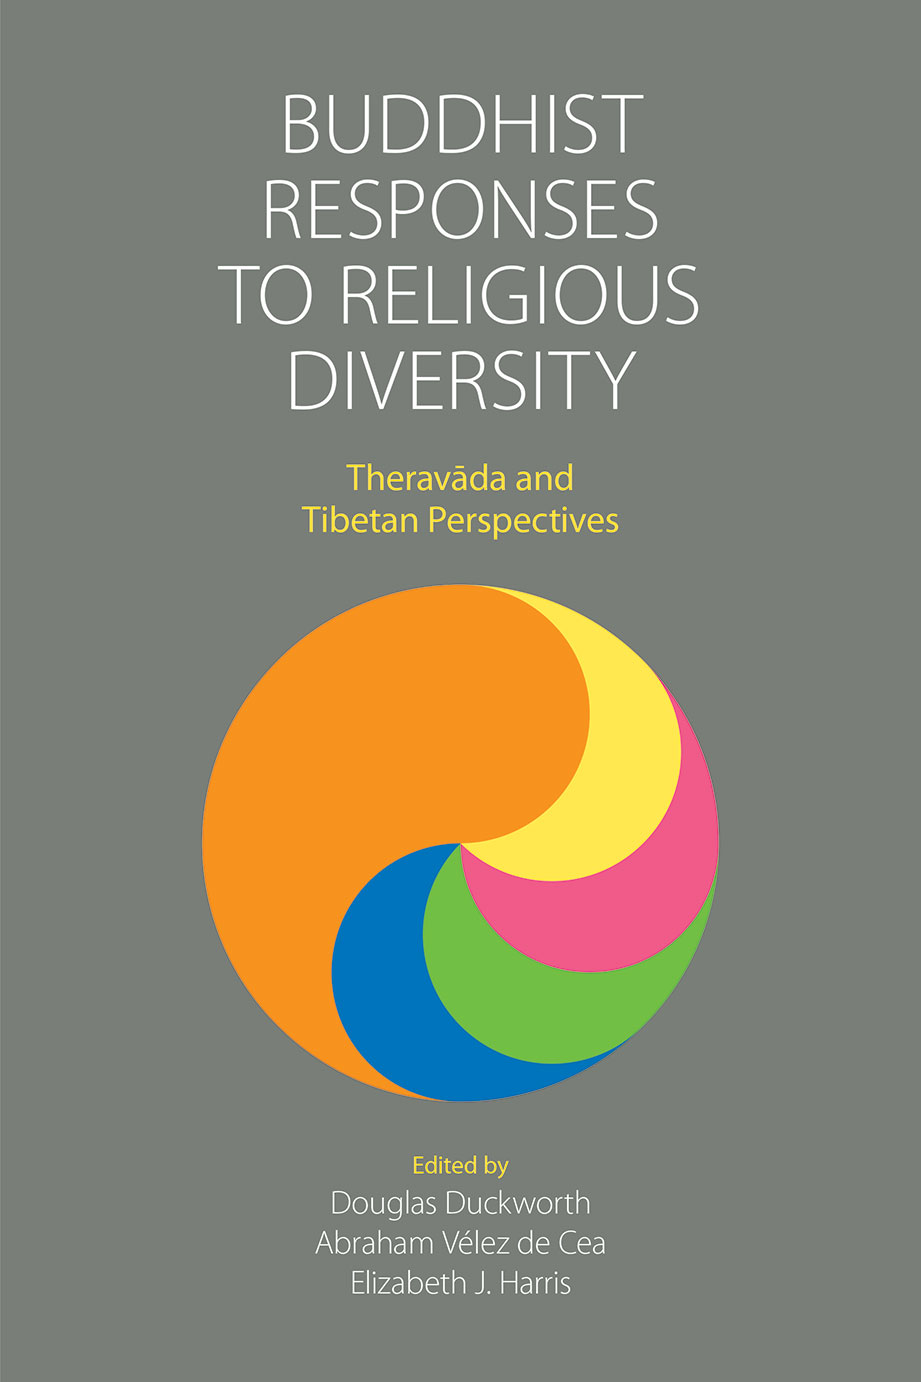 Buddhist Responses to Religious Diversity - Theravāda and Tibetan Perspectives - Douglas Duckworth